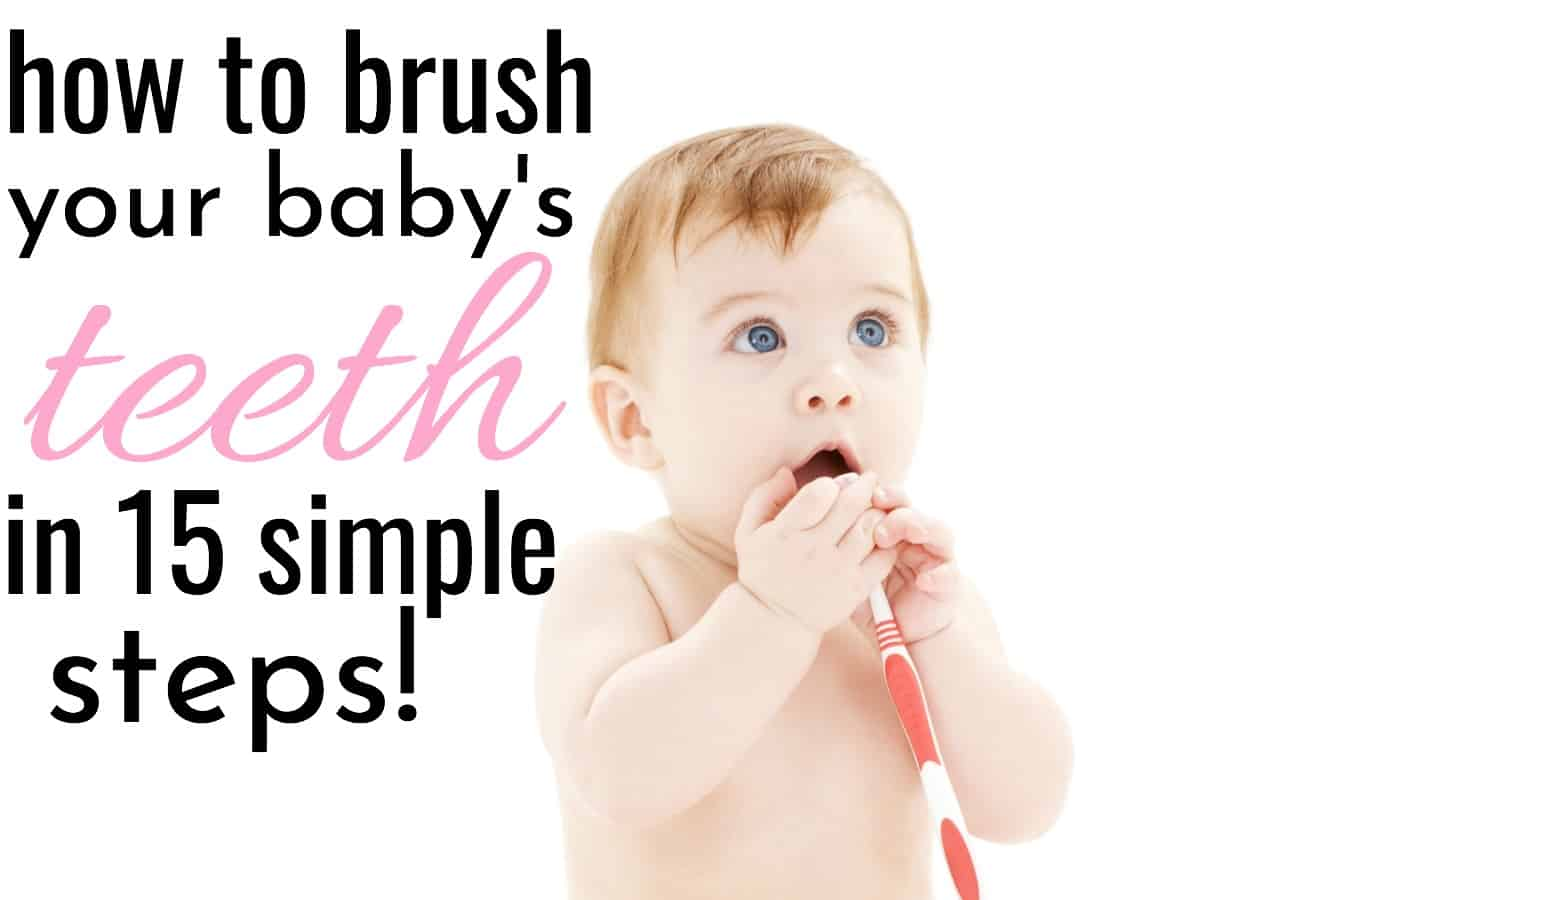 baby holding a toothbrush learning how to brush a baby's teeth